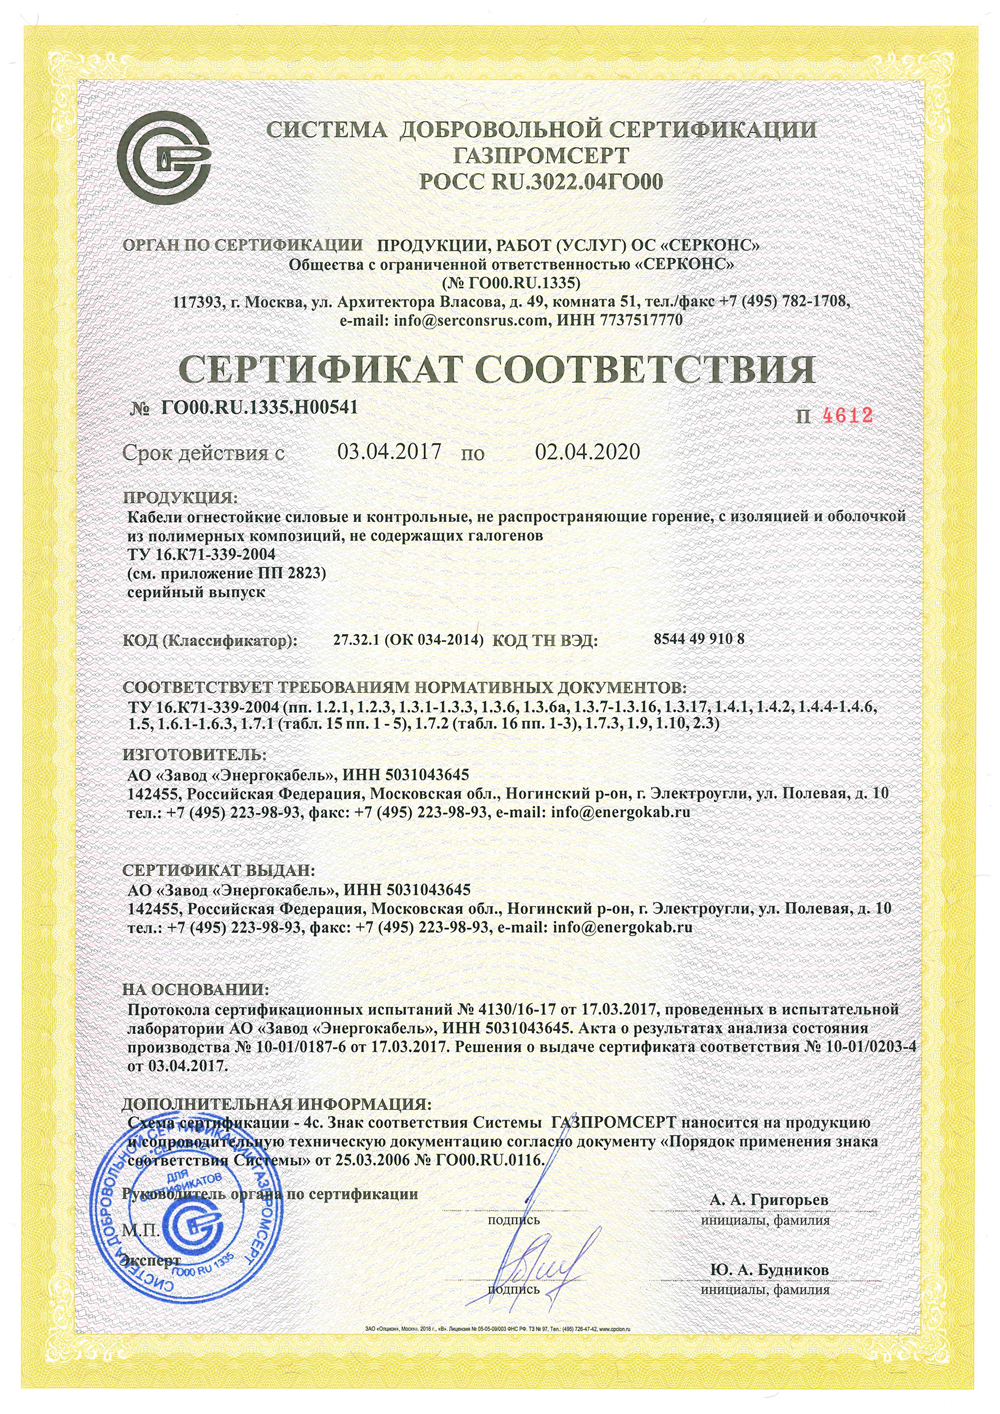 Certificate of Conformity No. ГО00.RU.1335.Н00541. Fire-resistant power and control cables, flame retardant, with insulation and sheath of halogen free polymer compositions.